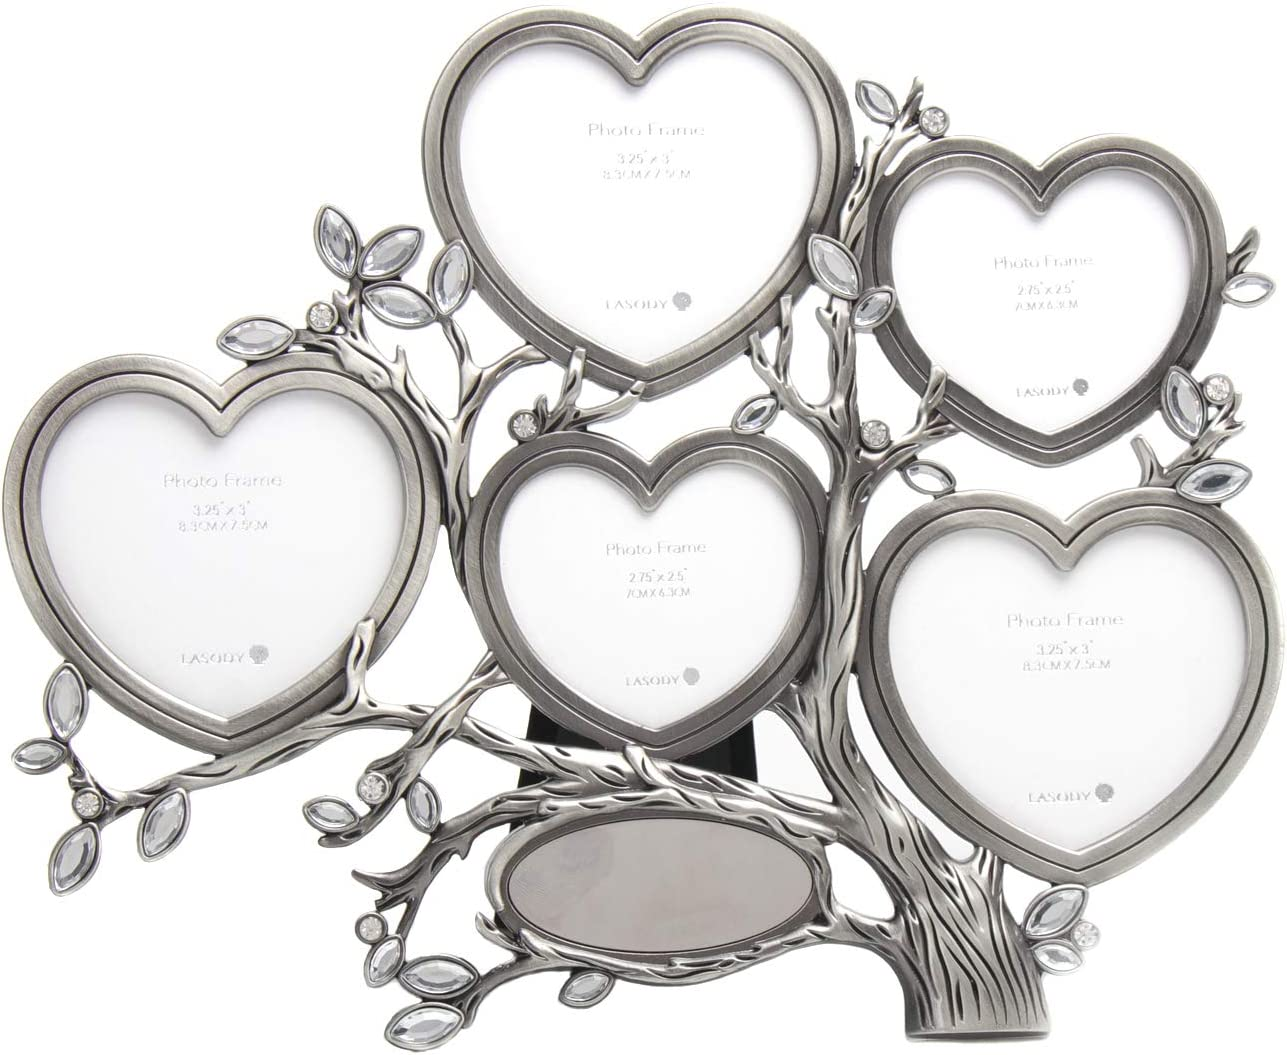 LASODY Antique Silver Personalized Family Tree With 5 Picture Frames,Metal Table Top Photo Frame Decoration (2.75X2.5+3.25X3, Picture Frame with Engraving Plate Included)